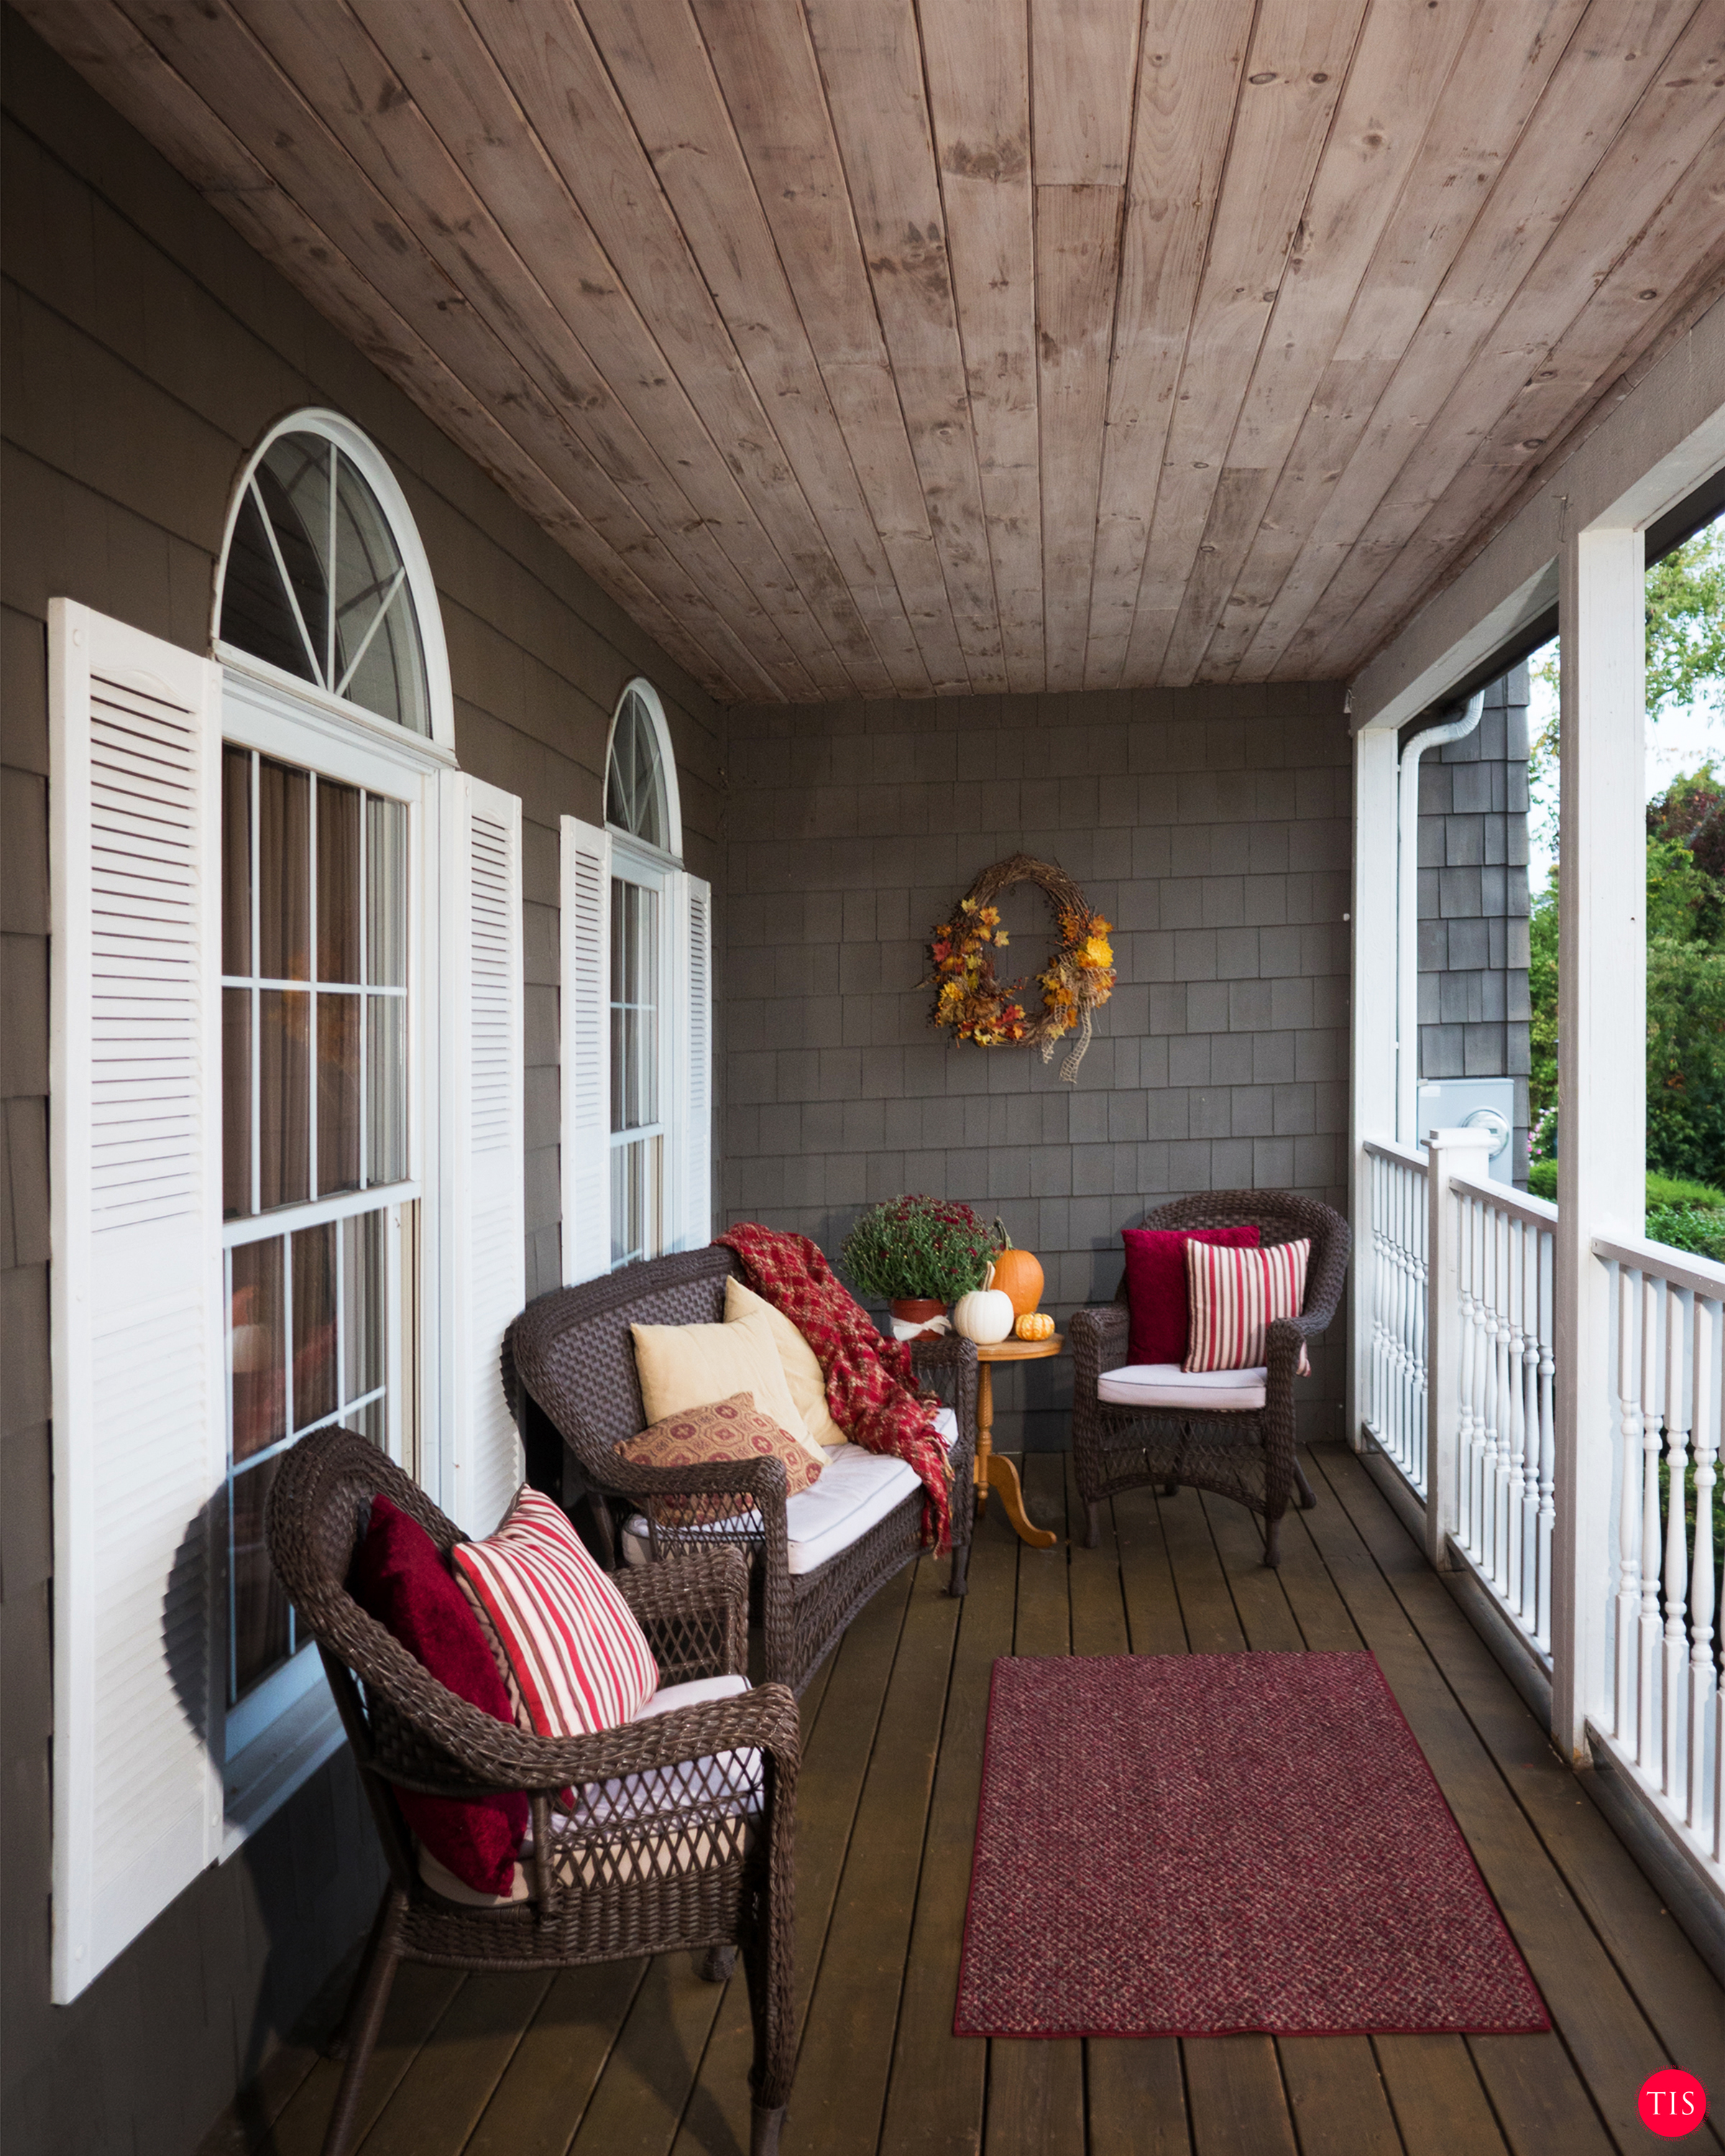 Outdoor Funiture and Decor for the Porch